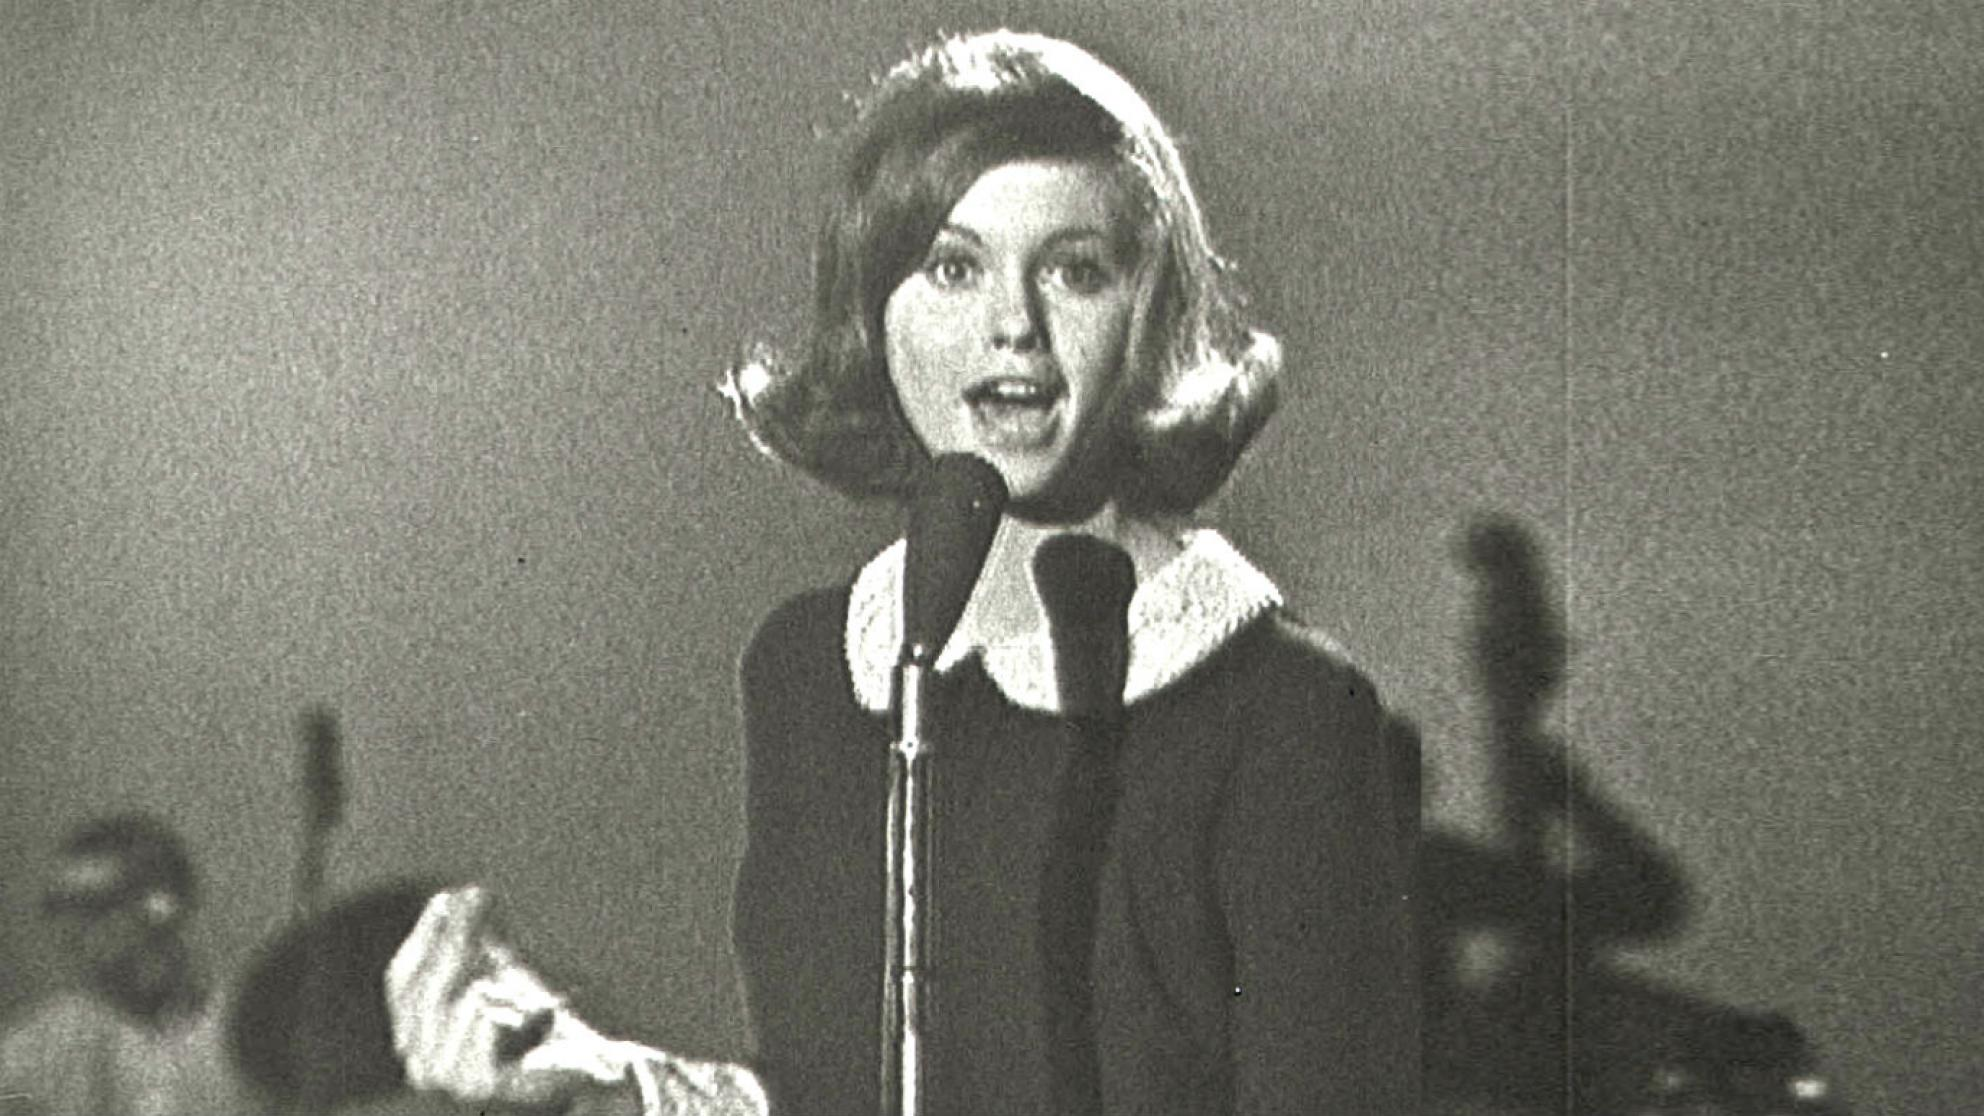 Olivia Newton-John at age 16 in a TV studio standing behind a microphone singing.